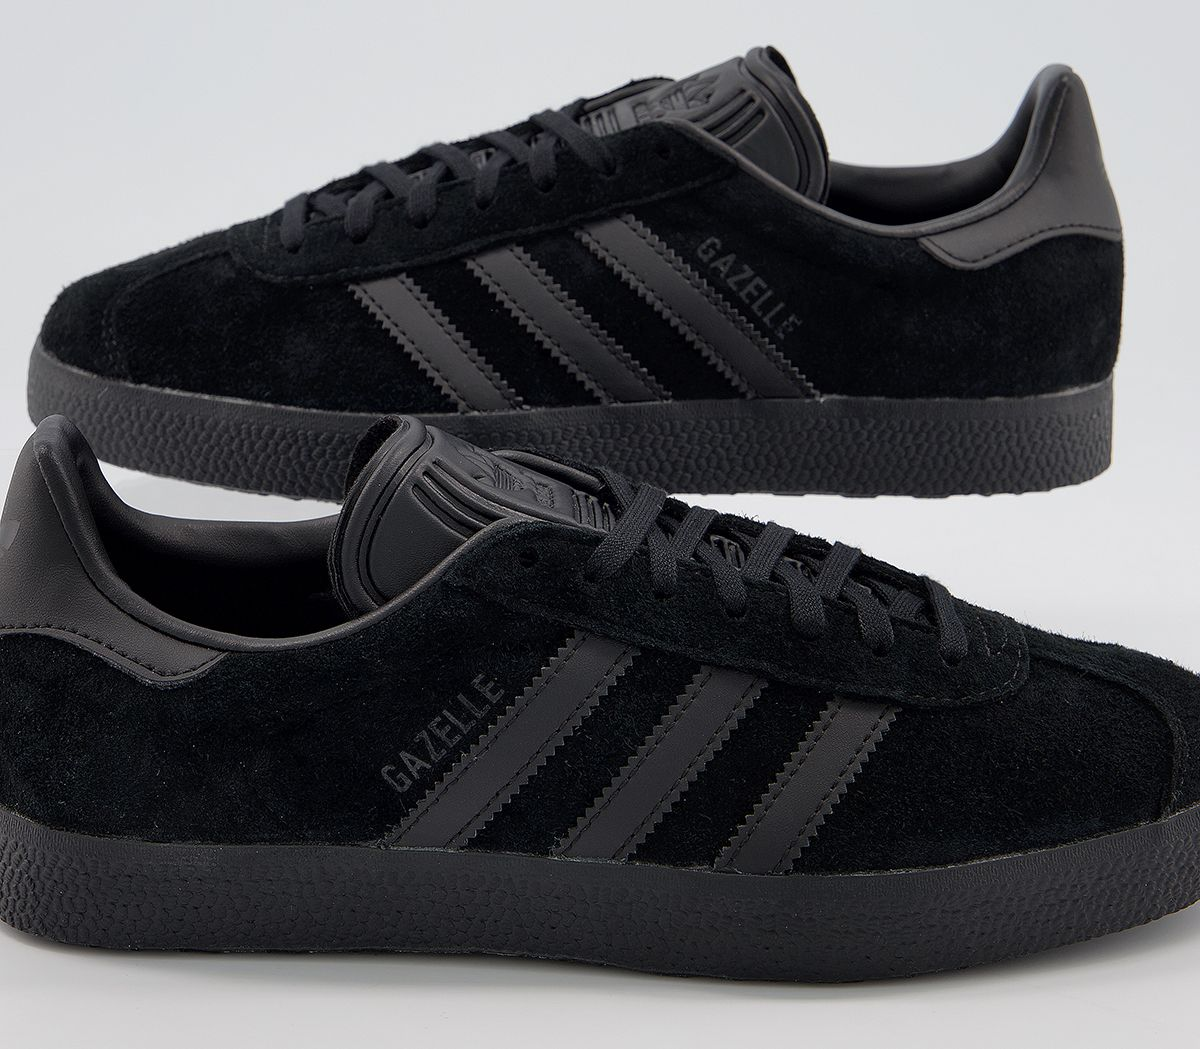 best service 97608 f4f97 Sentinel Mens Adidas Gazelle Trainers Core Black Core Black Trainers Shoes